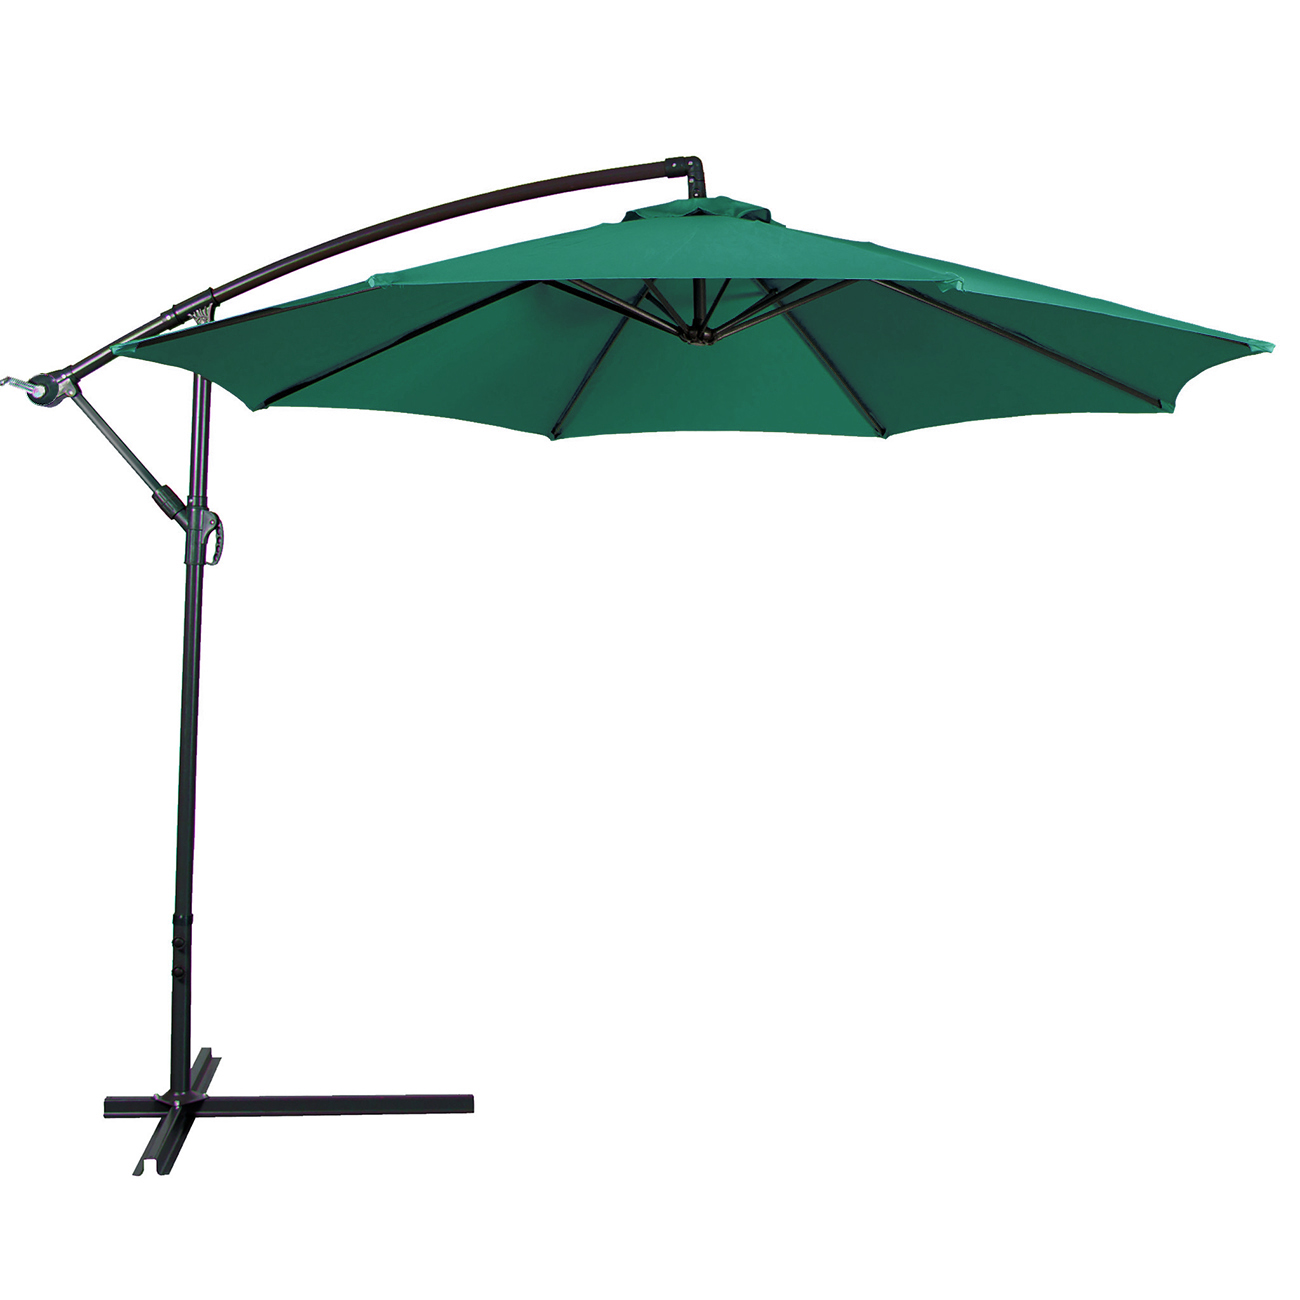 Outdoor Shade Umbrella 10ft Hanging Patio Umbrella Sun Shade Offset Outdoor Yard